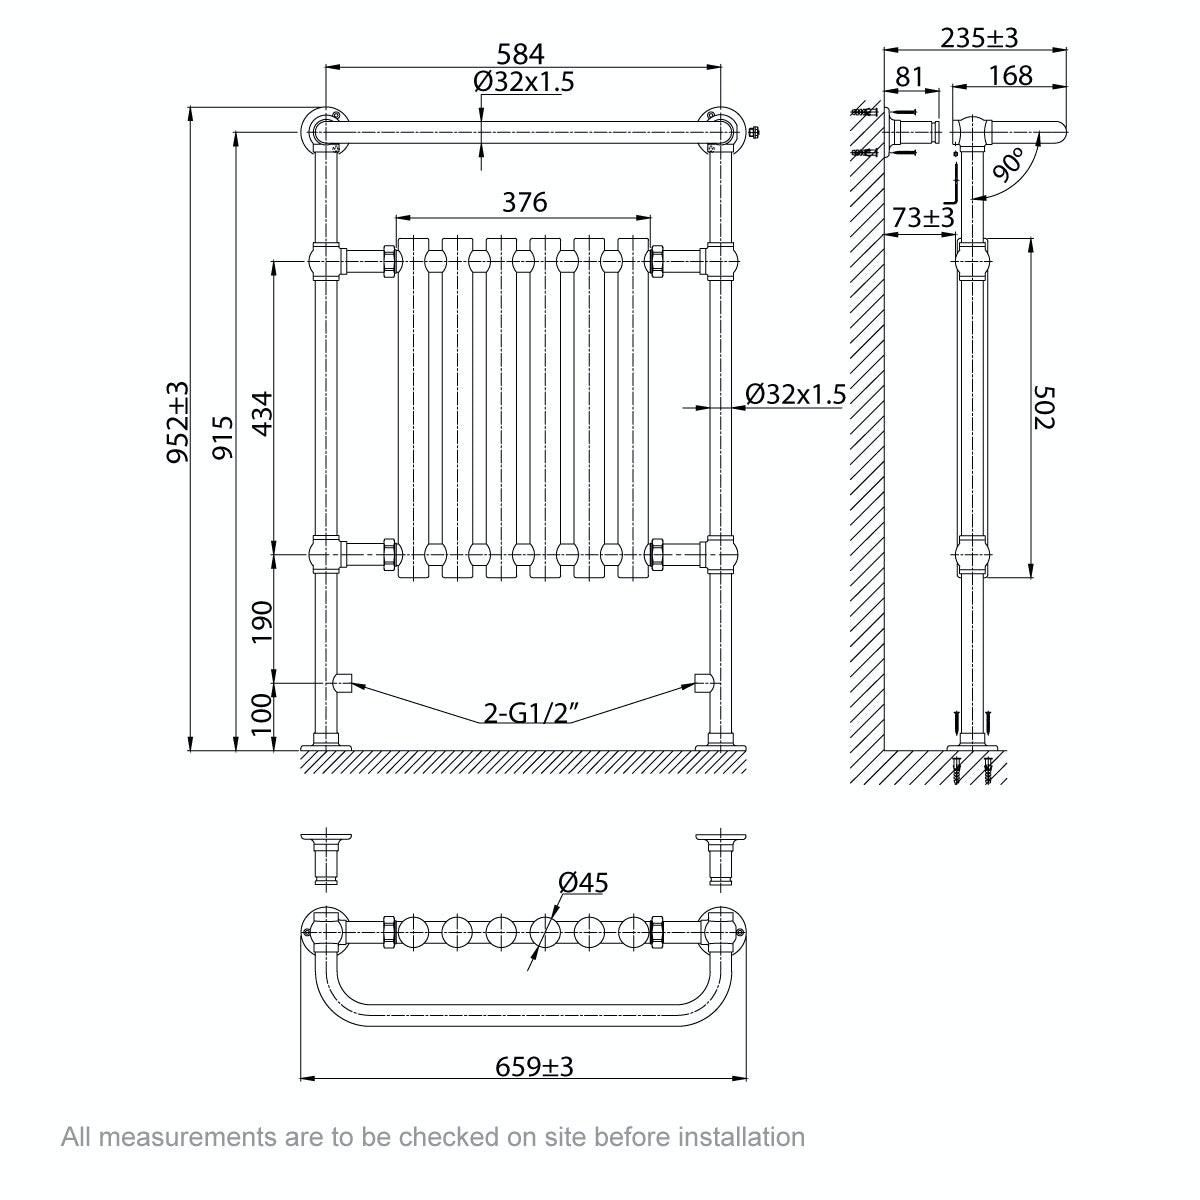 Dimensions for The Bath Co. Camberley radiator 952 x 659